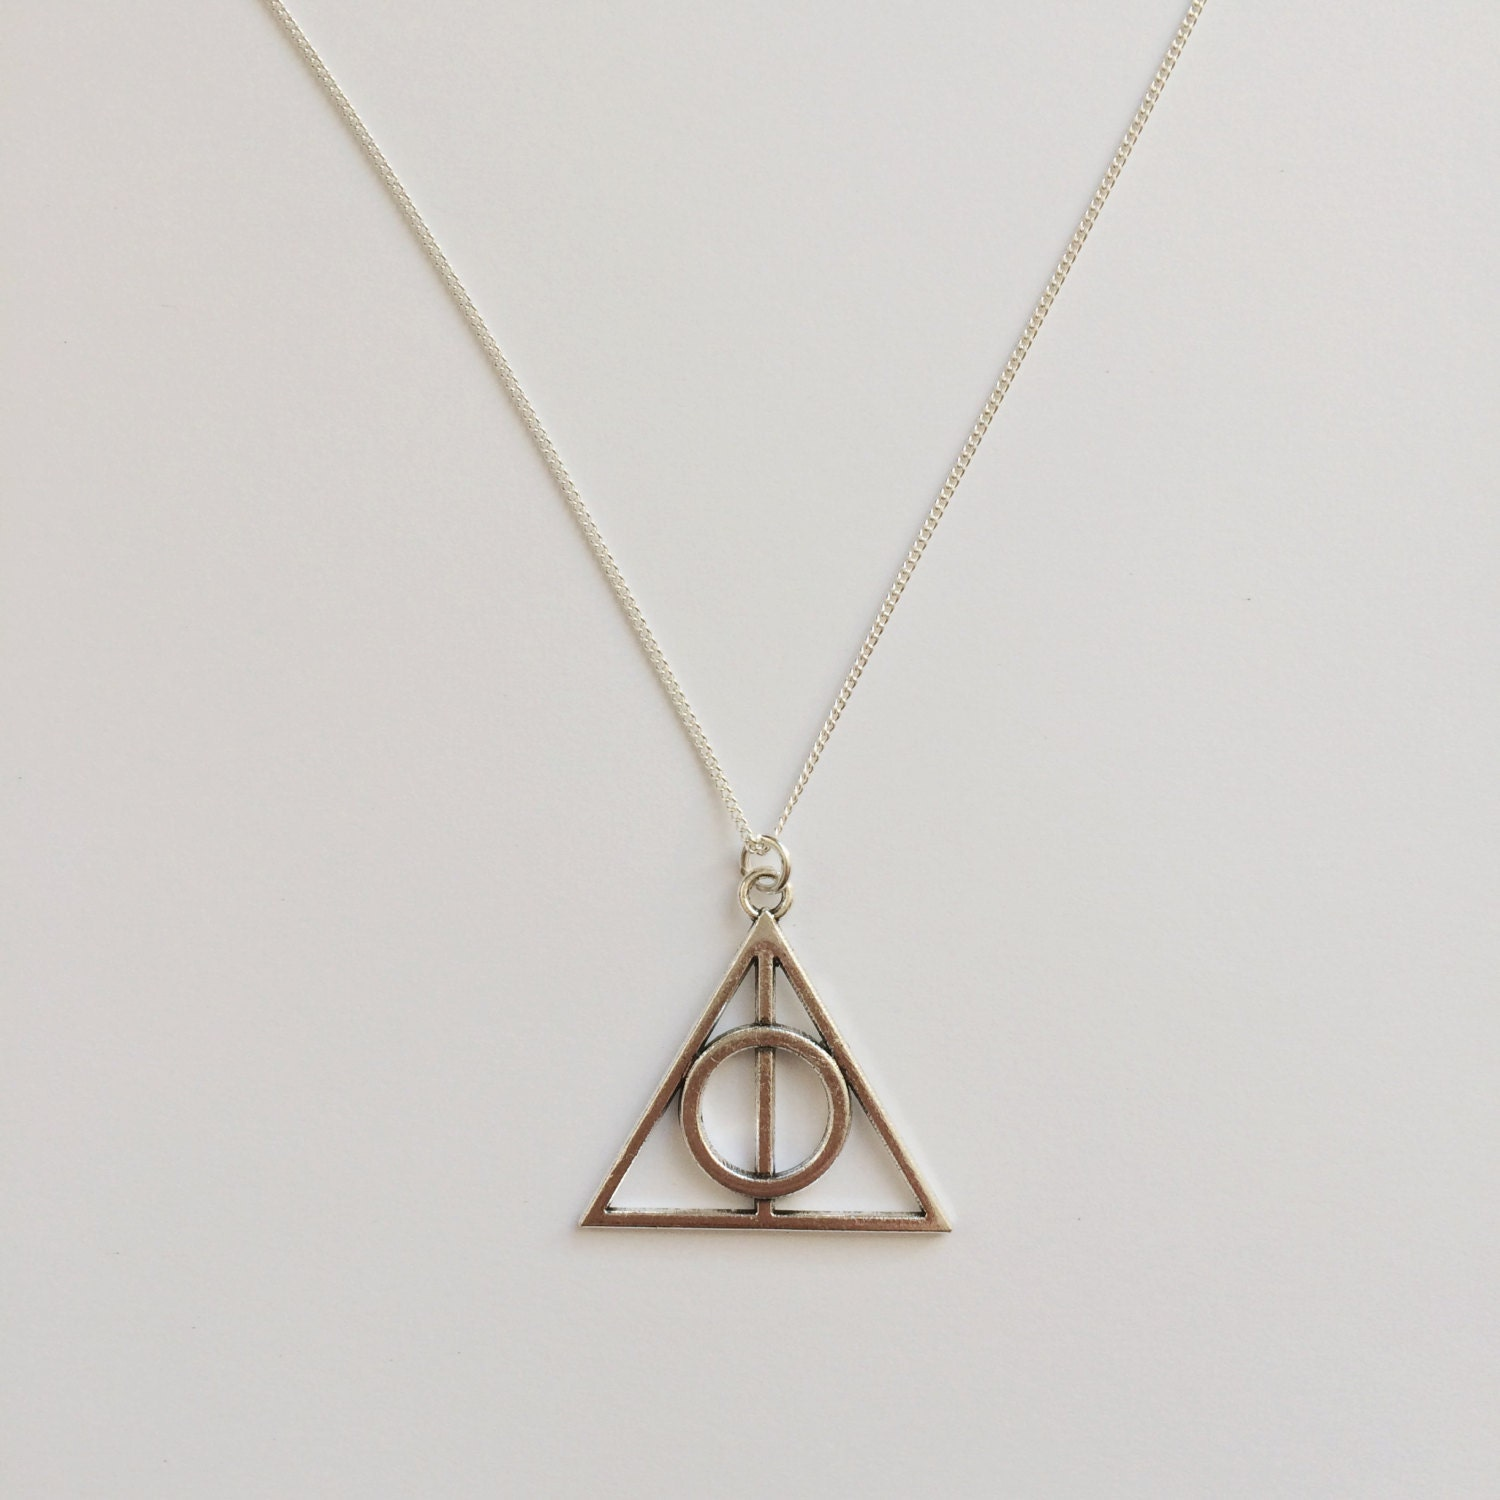 Harry Potter Inspired Charm Necklace  The Deathly Hallows Symbol  Handmade Silver Necklace